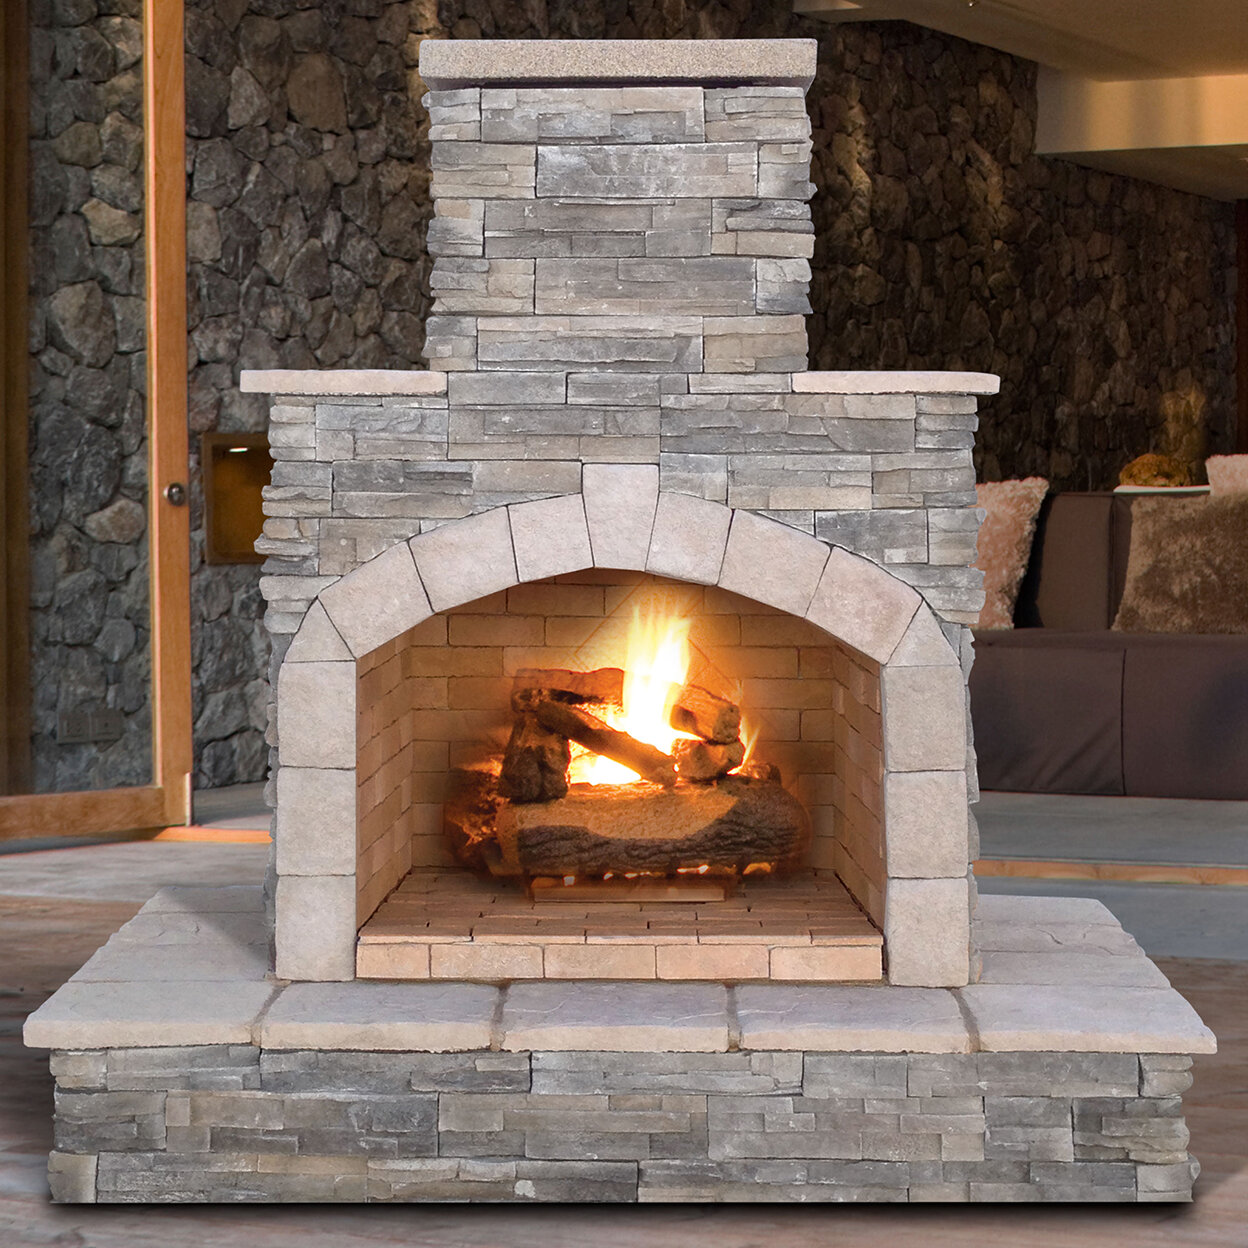 Stone Fireplace Next To The Outdoor Kitchen And A Lovely: Cal Flame Cultured Stone Propane / Gas Outdoor Fireplace